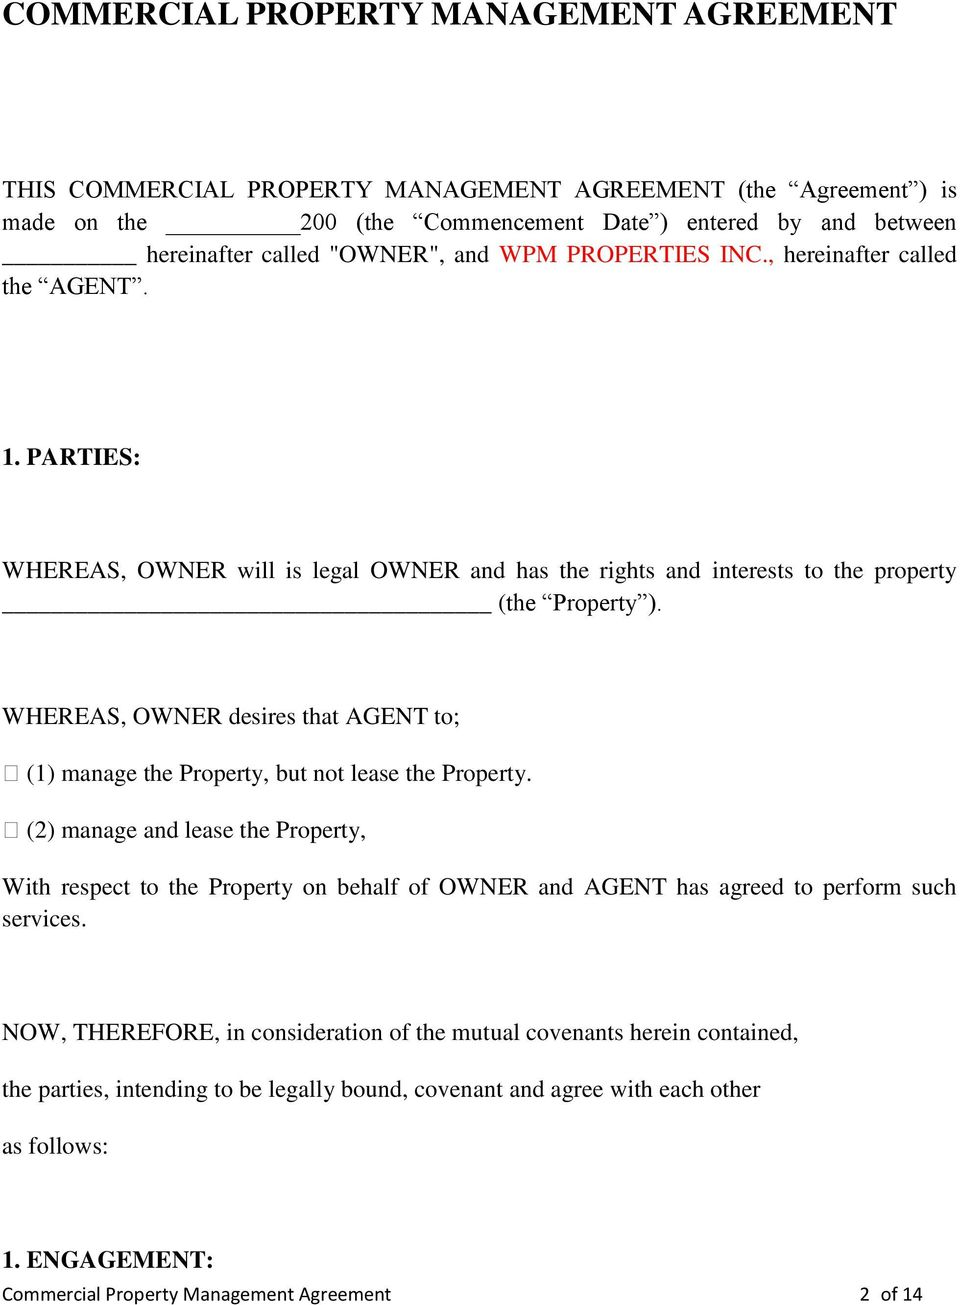 Property Management Agreement Template from docplayer.net